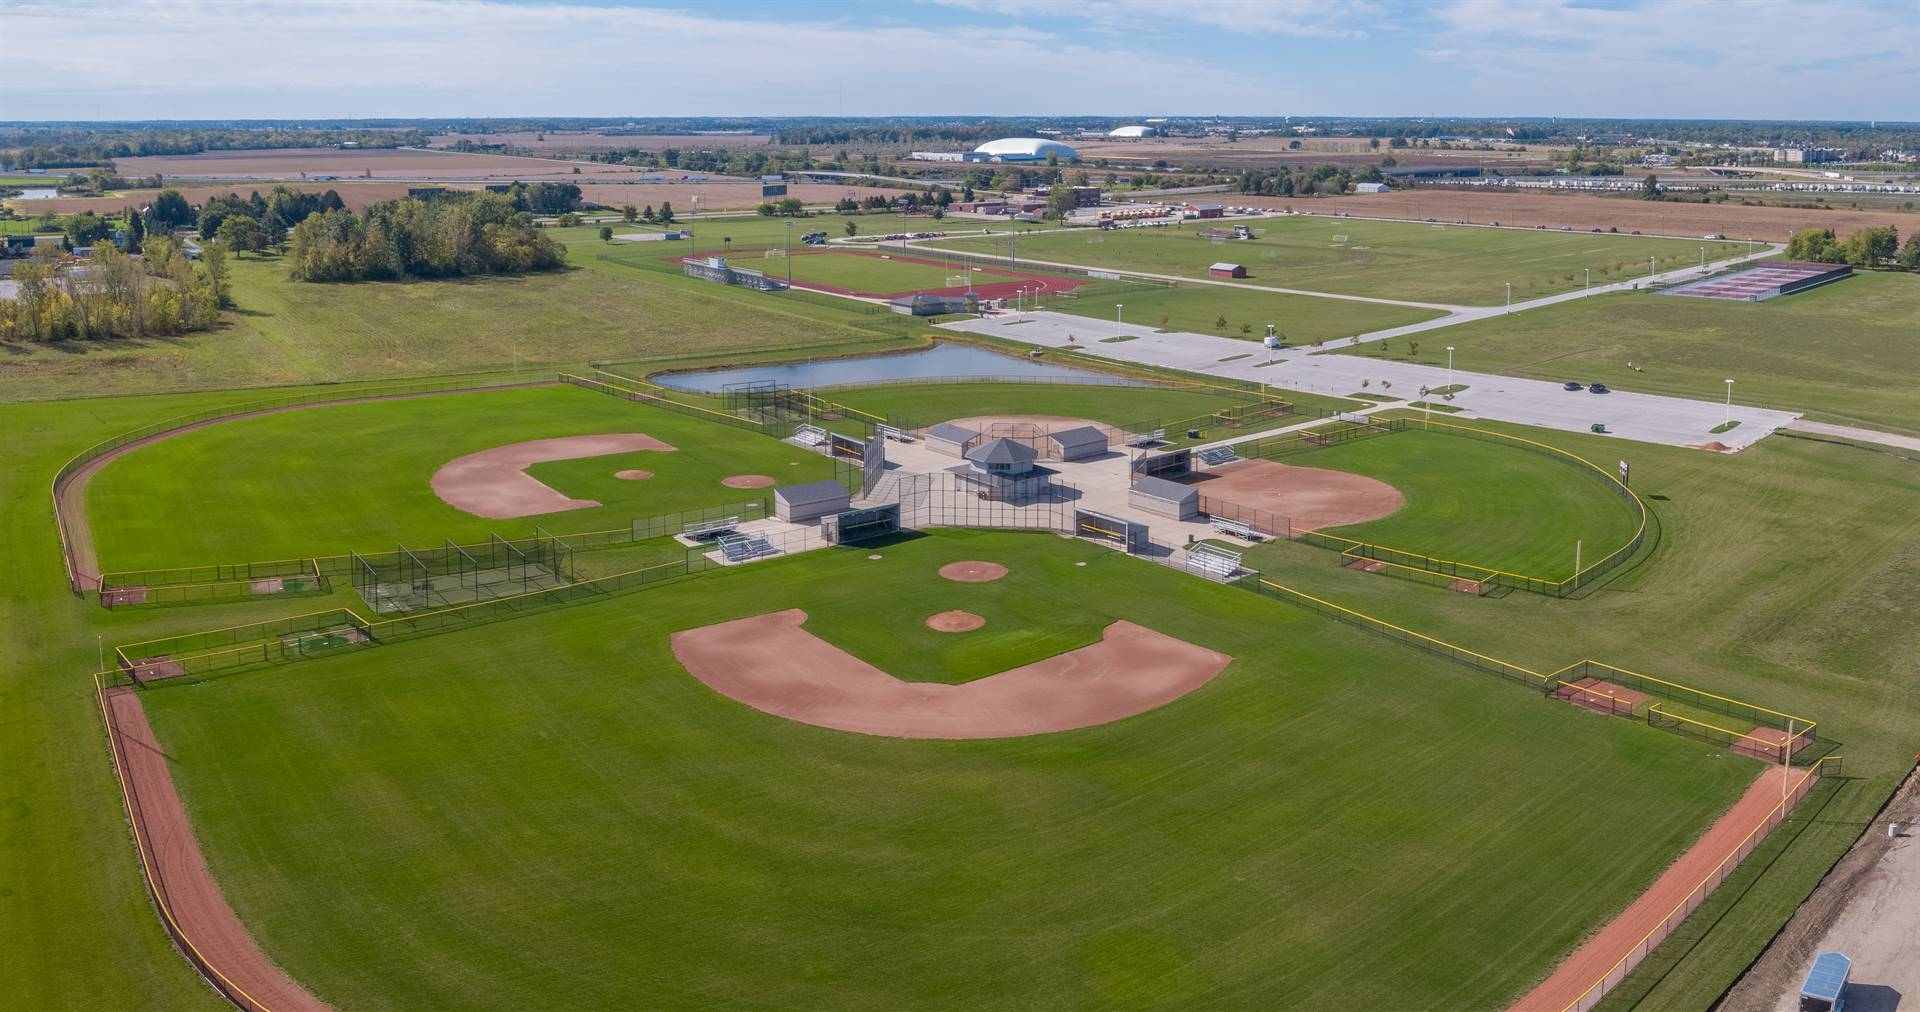 Aerial photo of baseball and softball fields